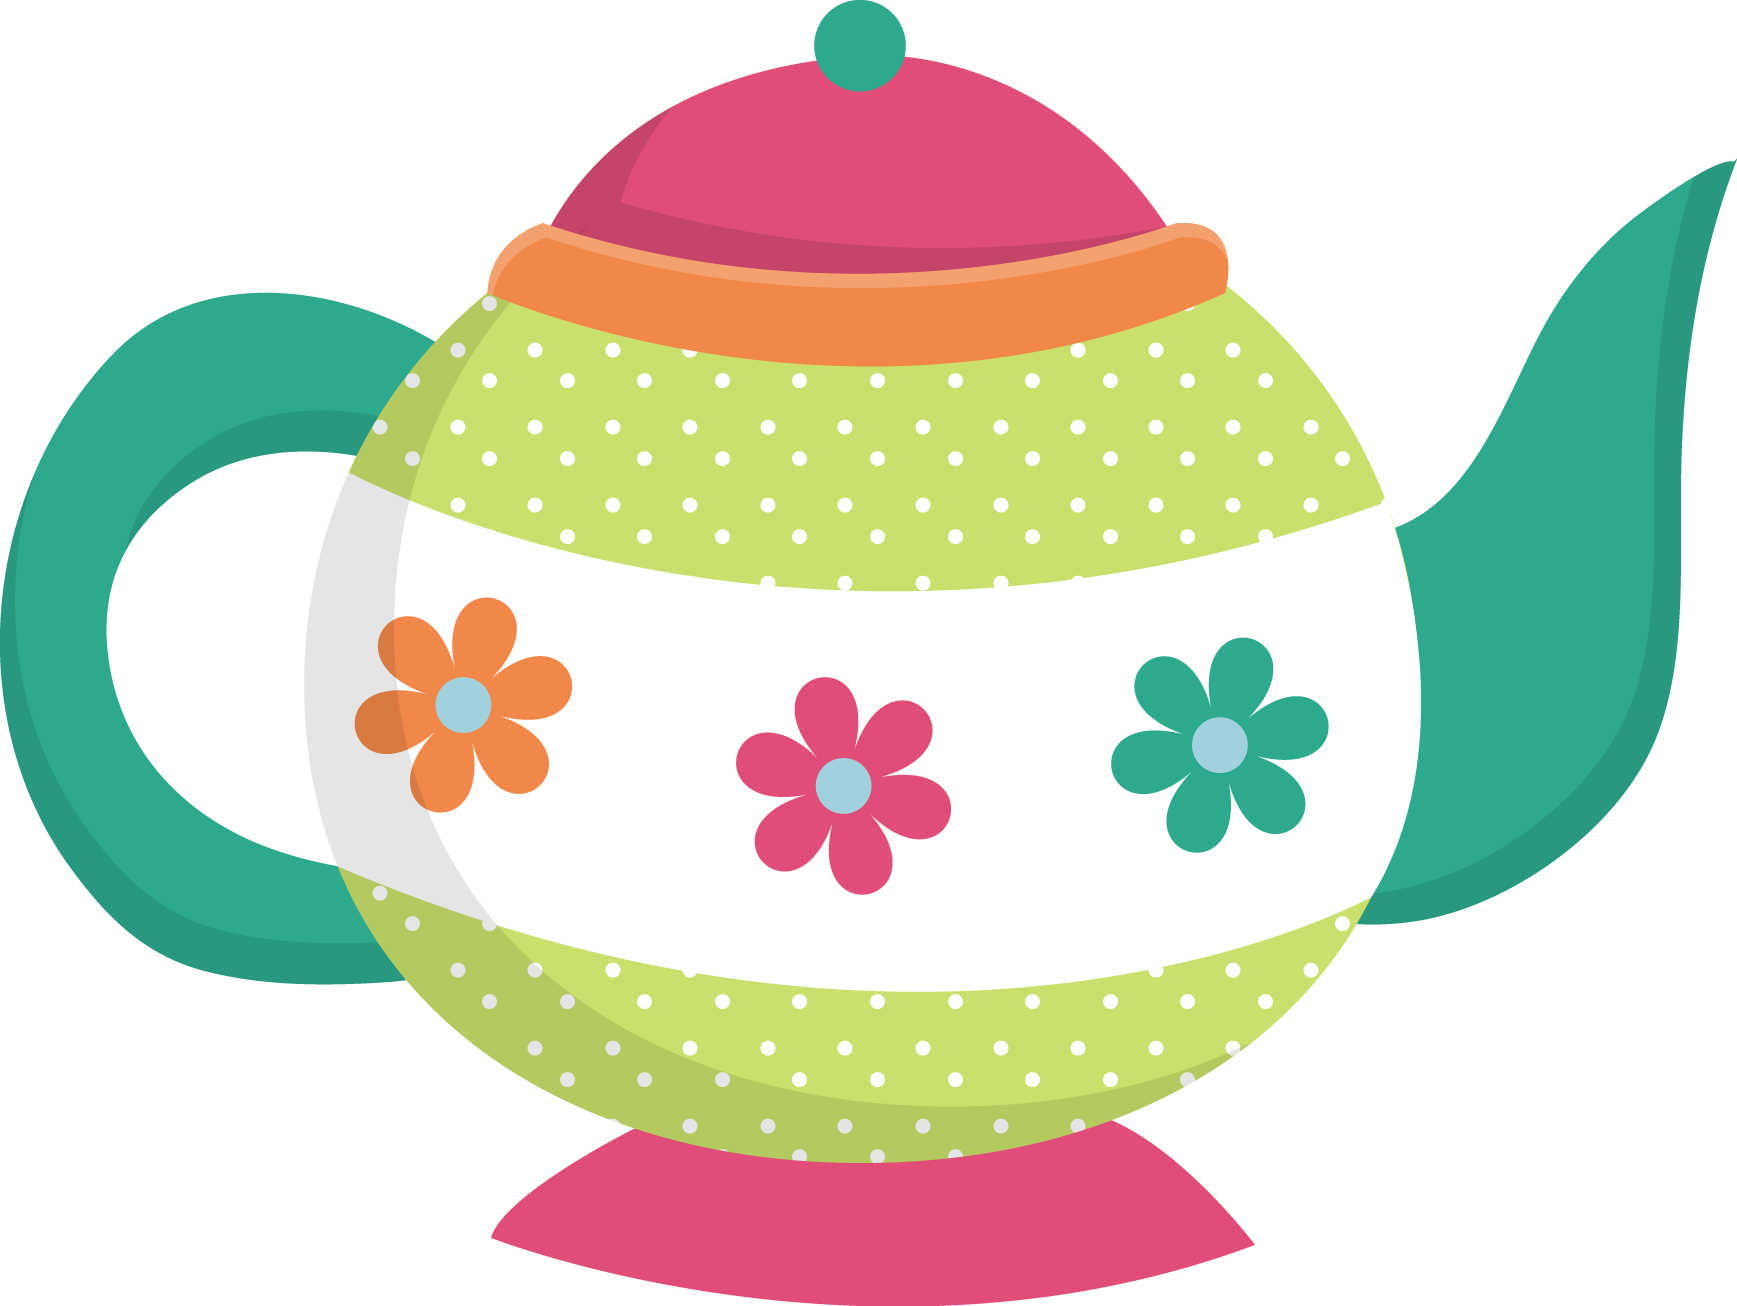 Tea Pot Clip Art Cliparts Co-Tea Pot Clip Art Cliparts Co-5